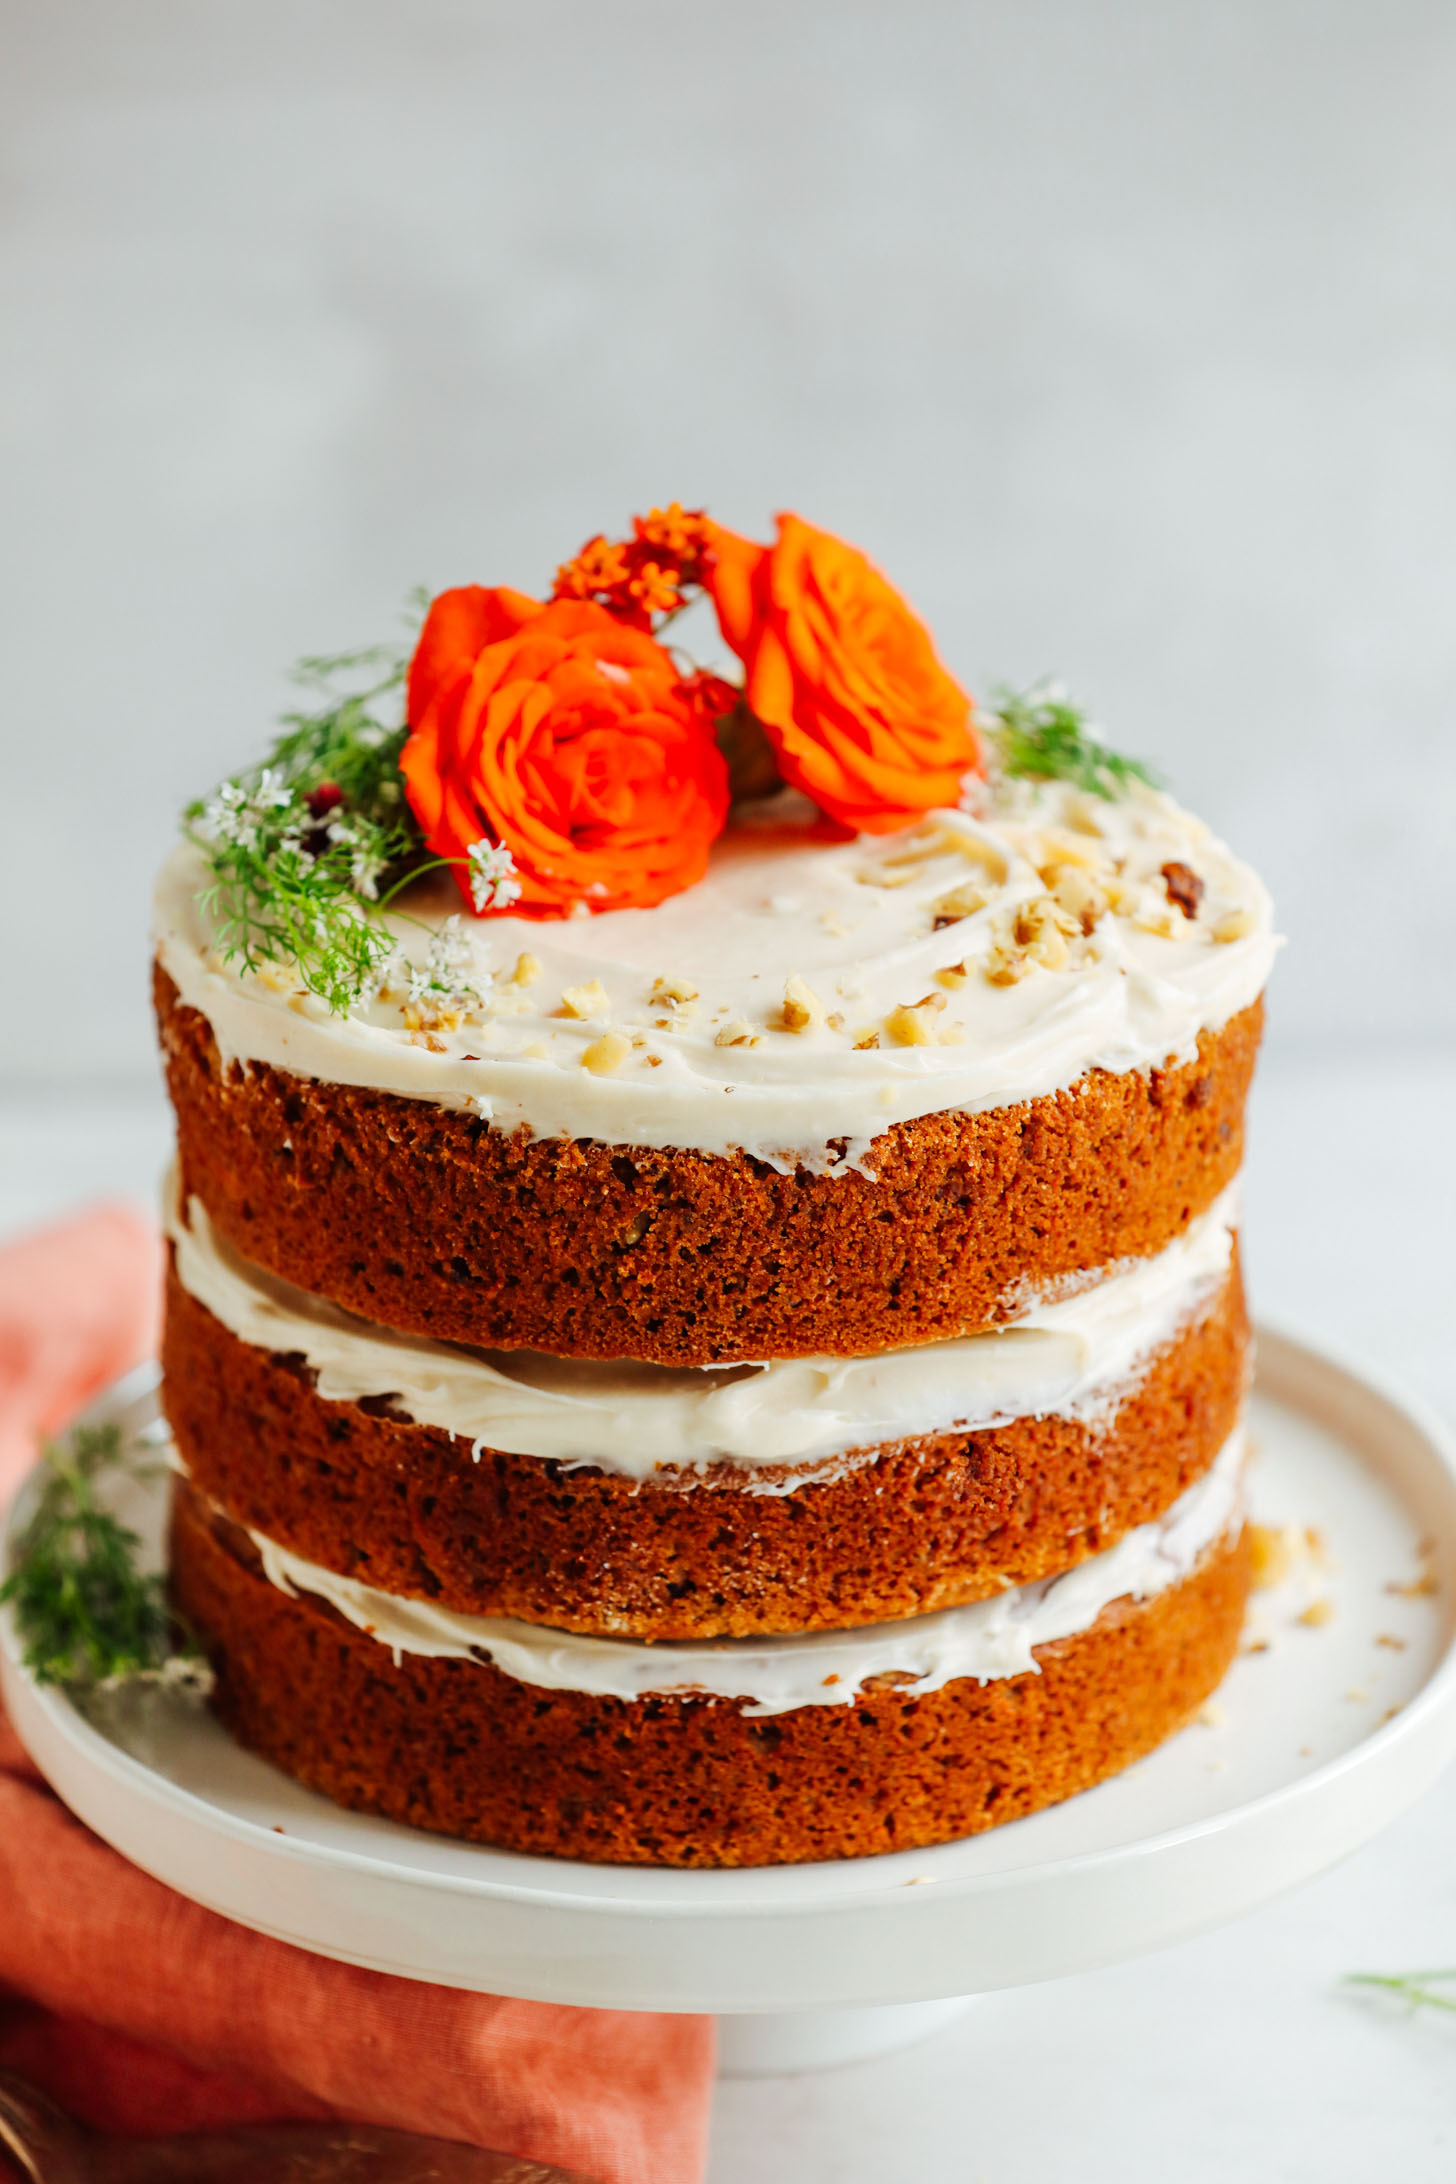 Three Layer Vegan Gluten Free Carrot Cake Decorated With Flowers And Chopped Nuts